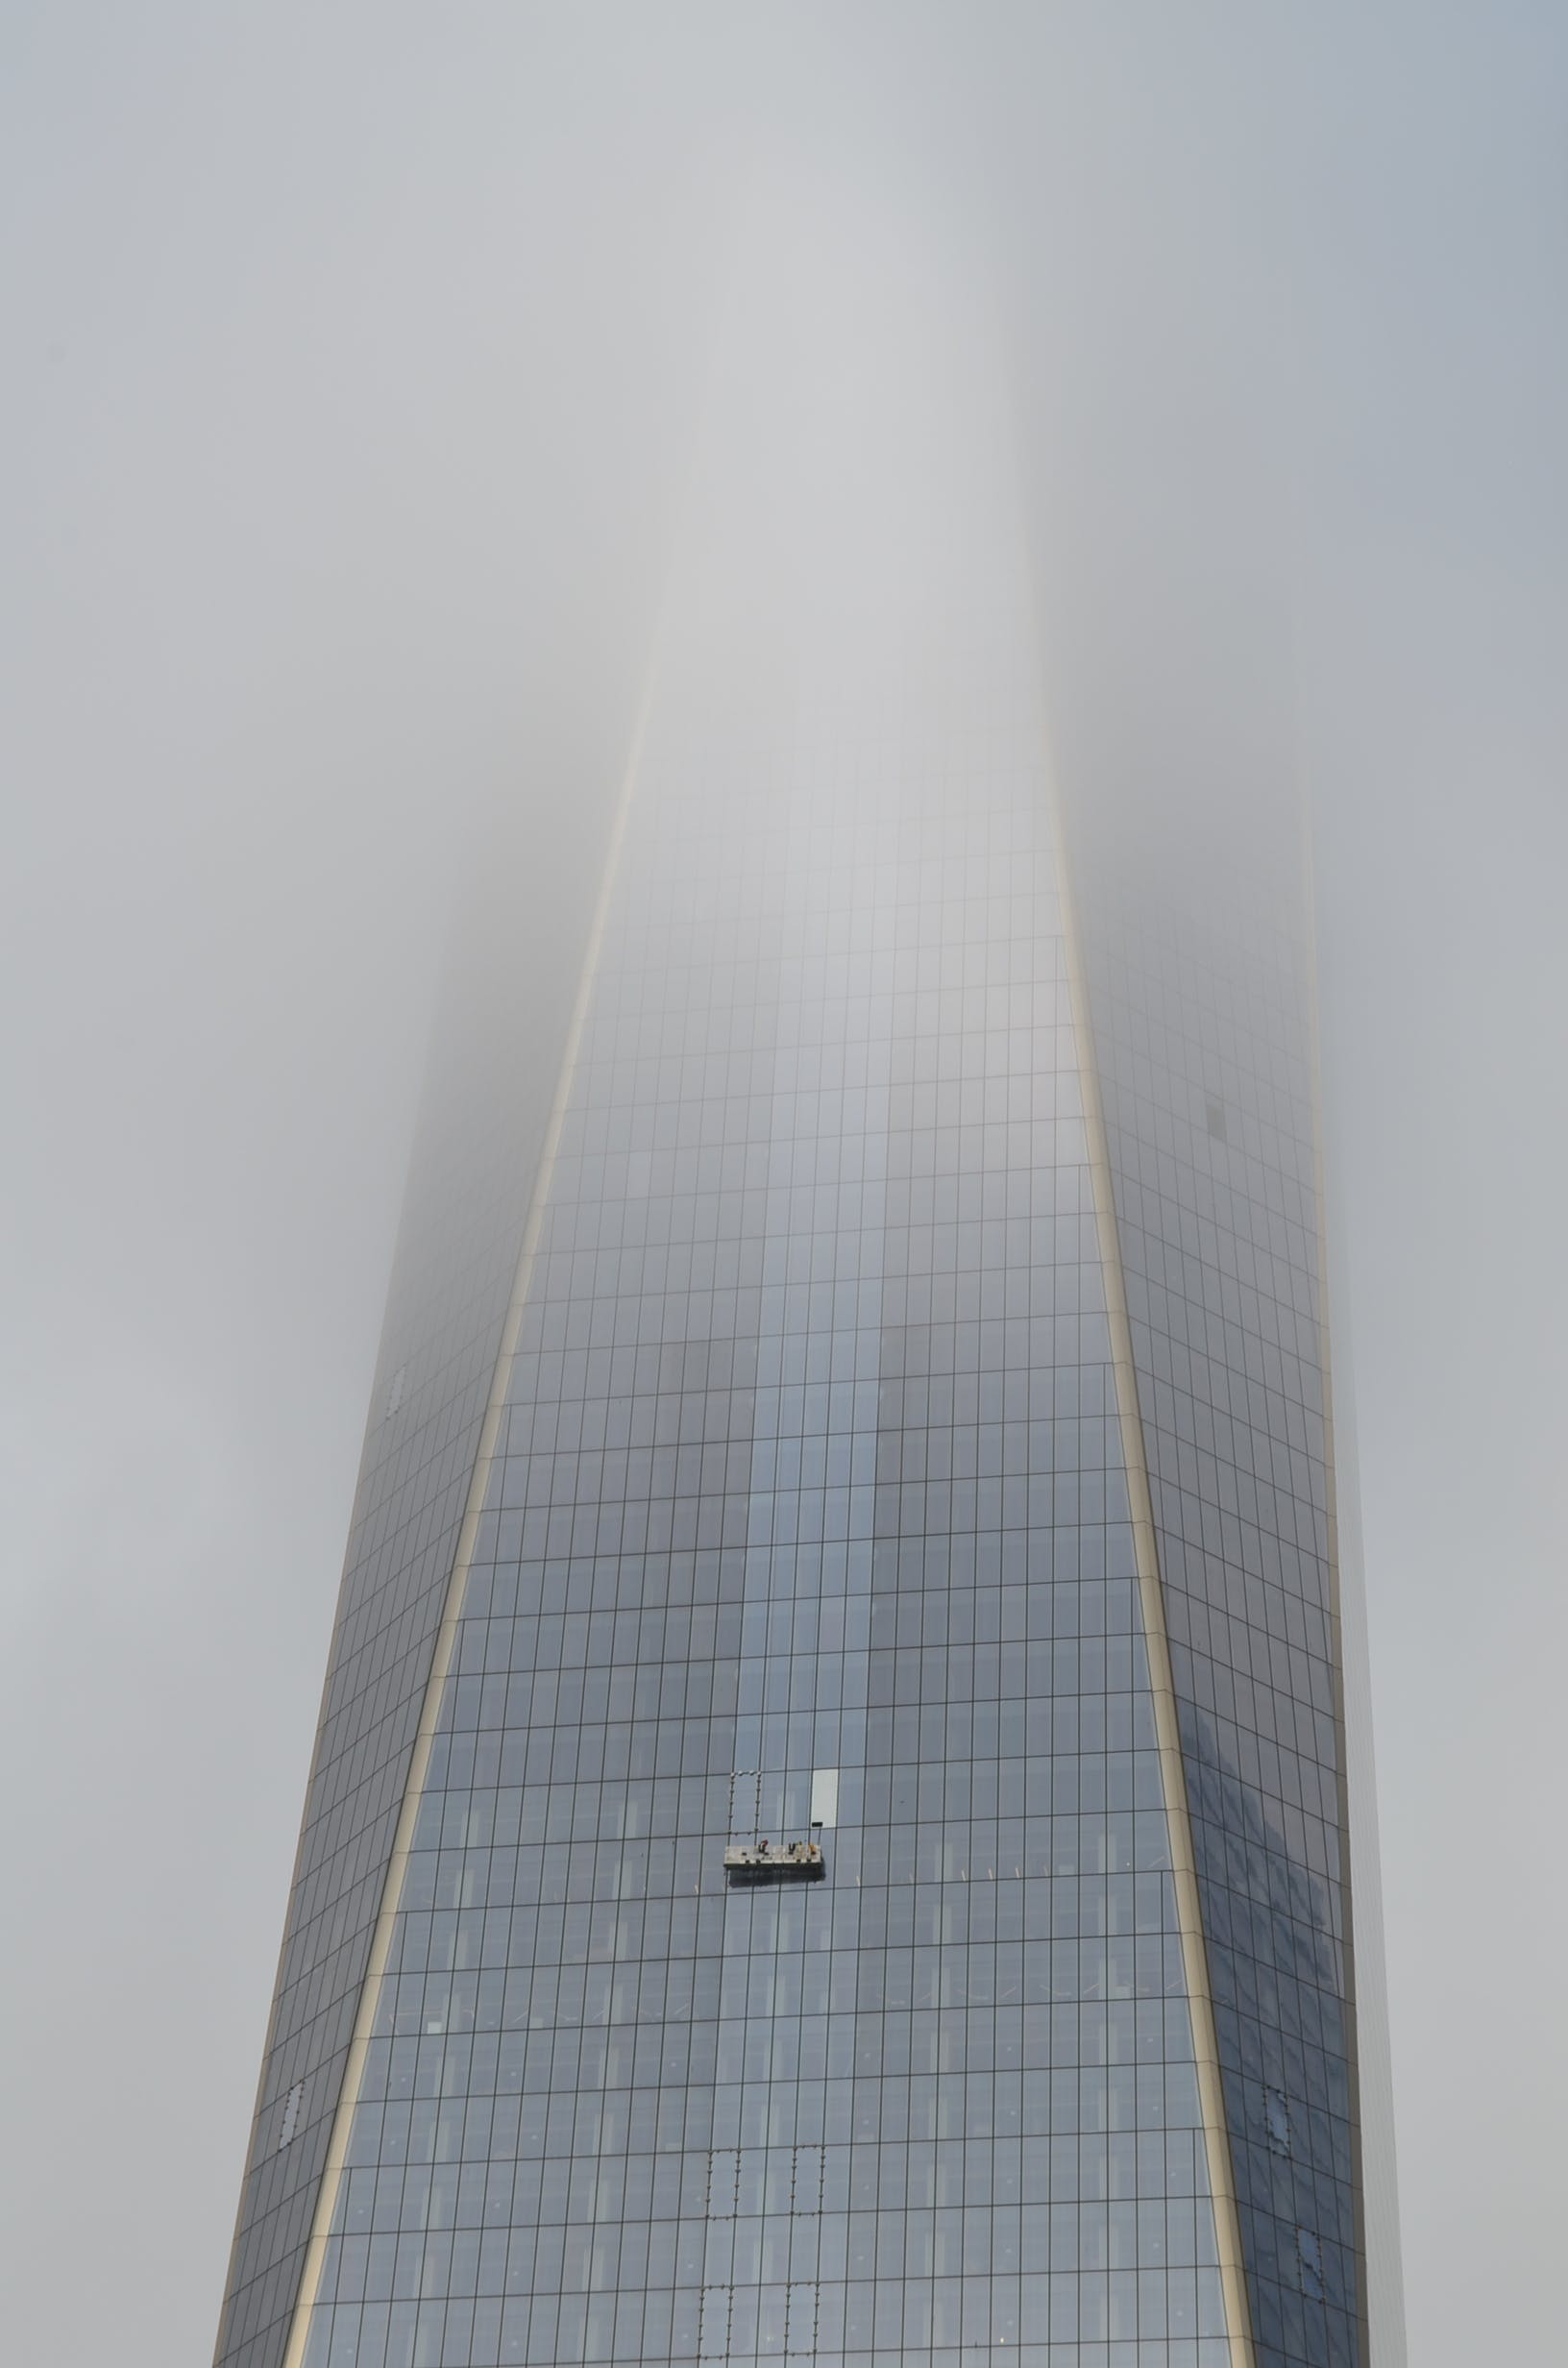 Glass Walled Building Covered by Fog